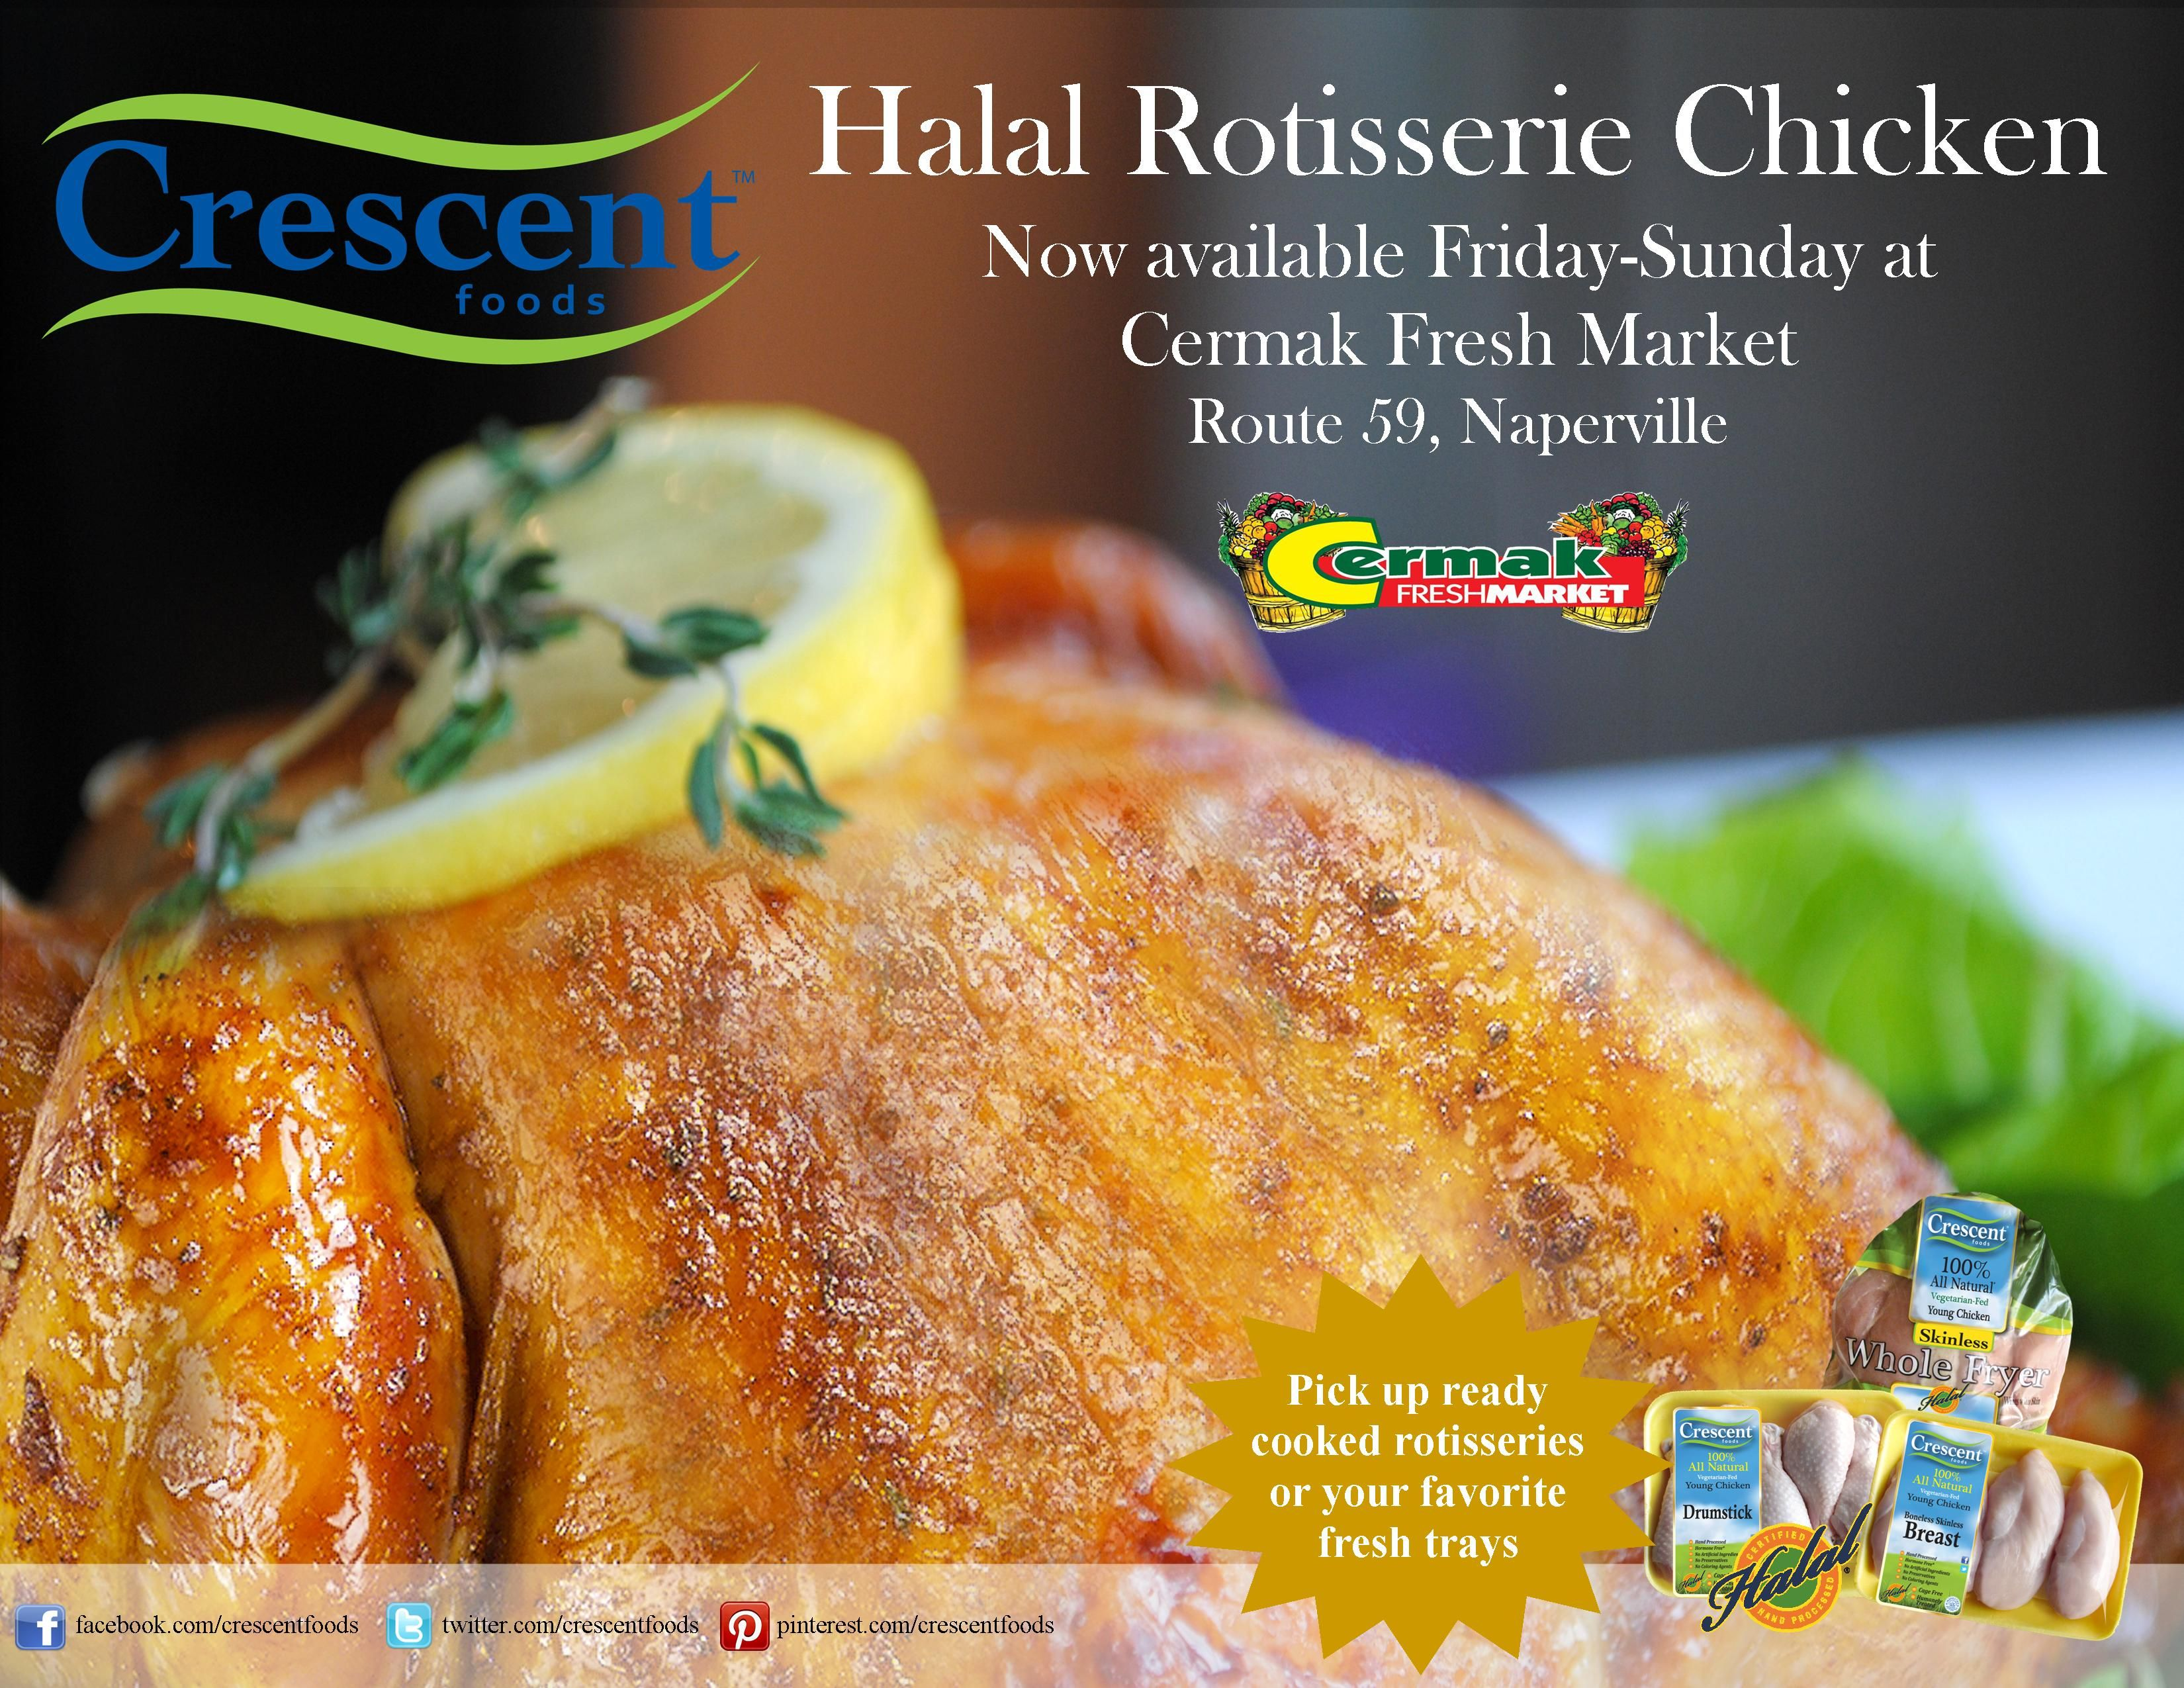 Ready Cooked Crescent Foods Halal Rotisseries at Cermak